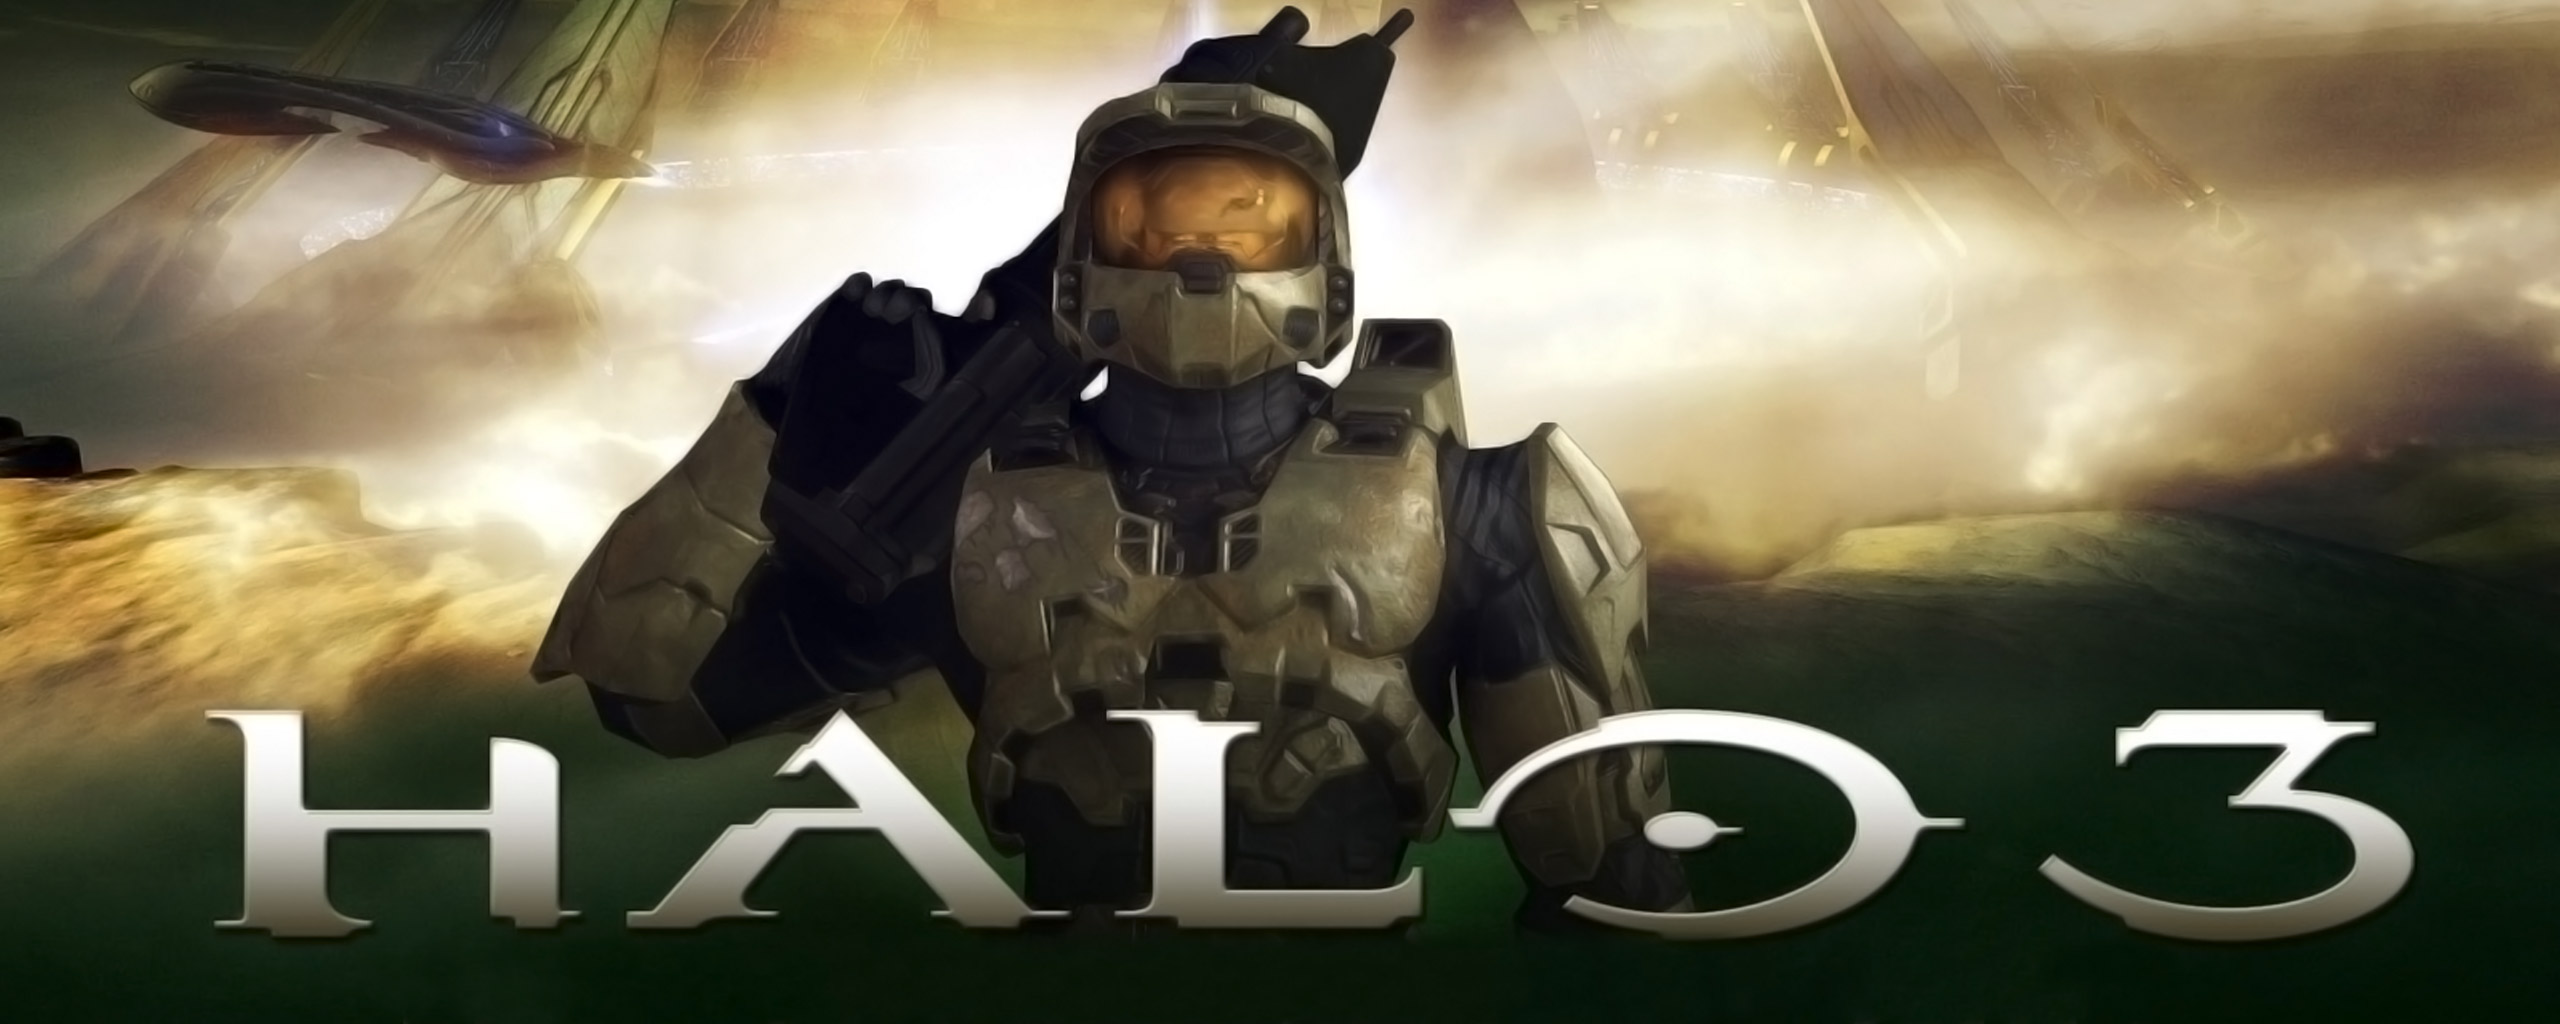 Halo 3 Backgrounds on Wallpapers Vista